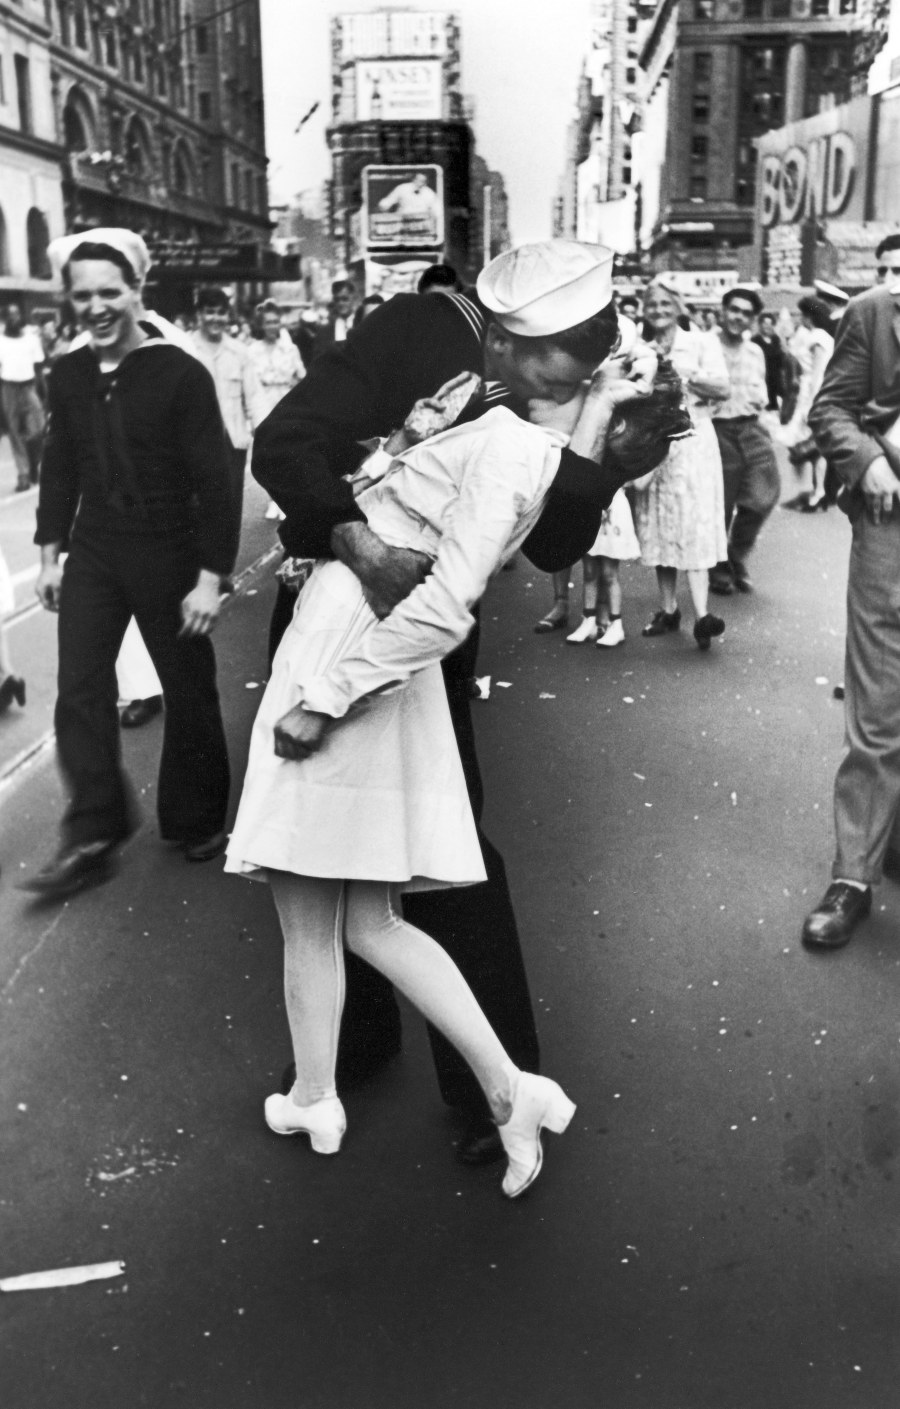 You Know This One An Oldie But Goodie Glenn McDuffie And Gloria Bullard The Two People Believed To Be Pictured In Iconic Image Kiss Times Square